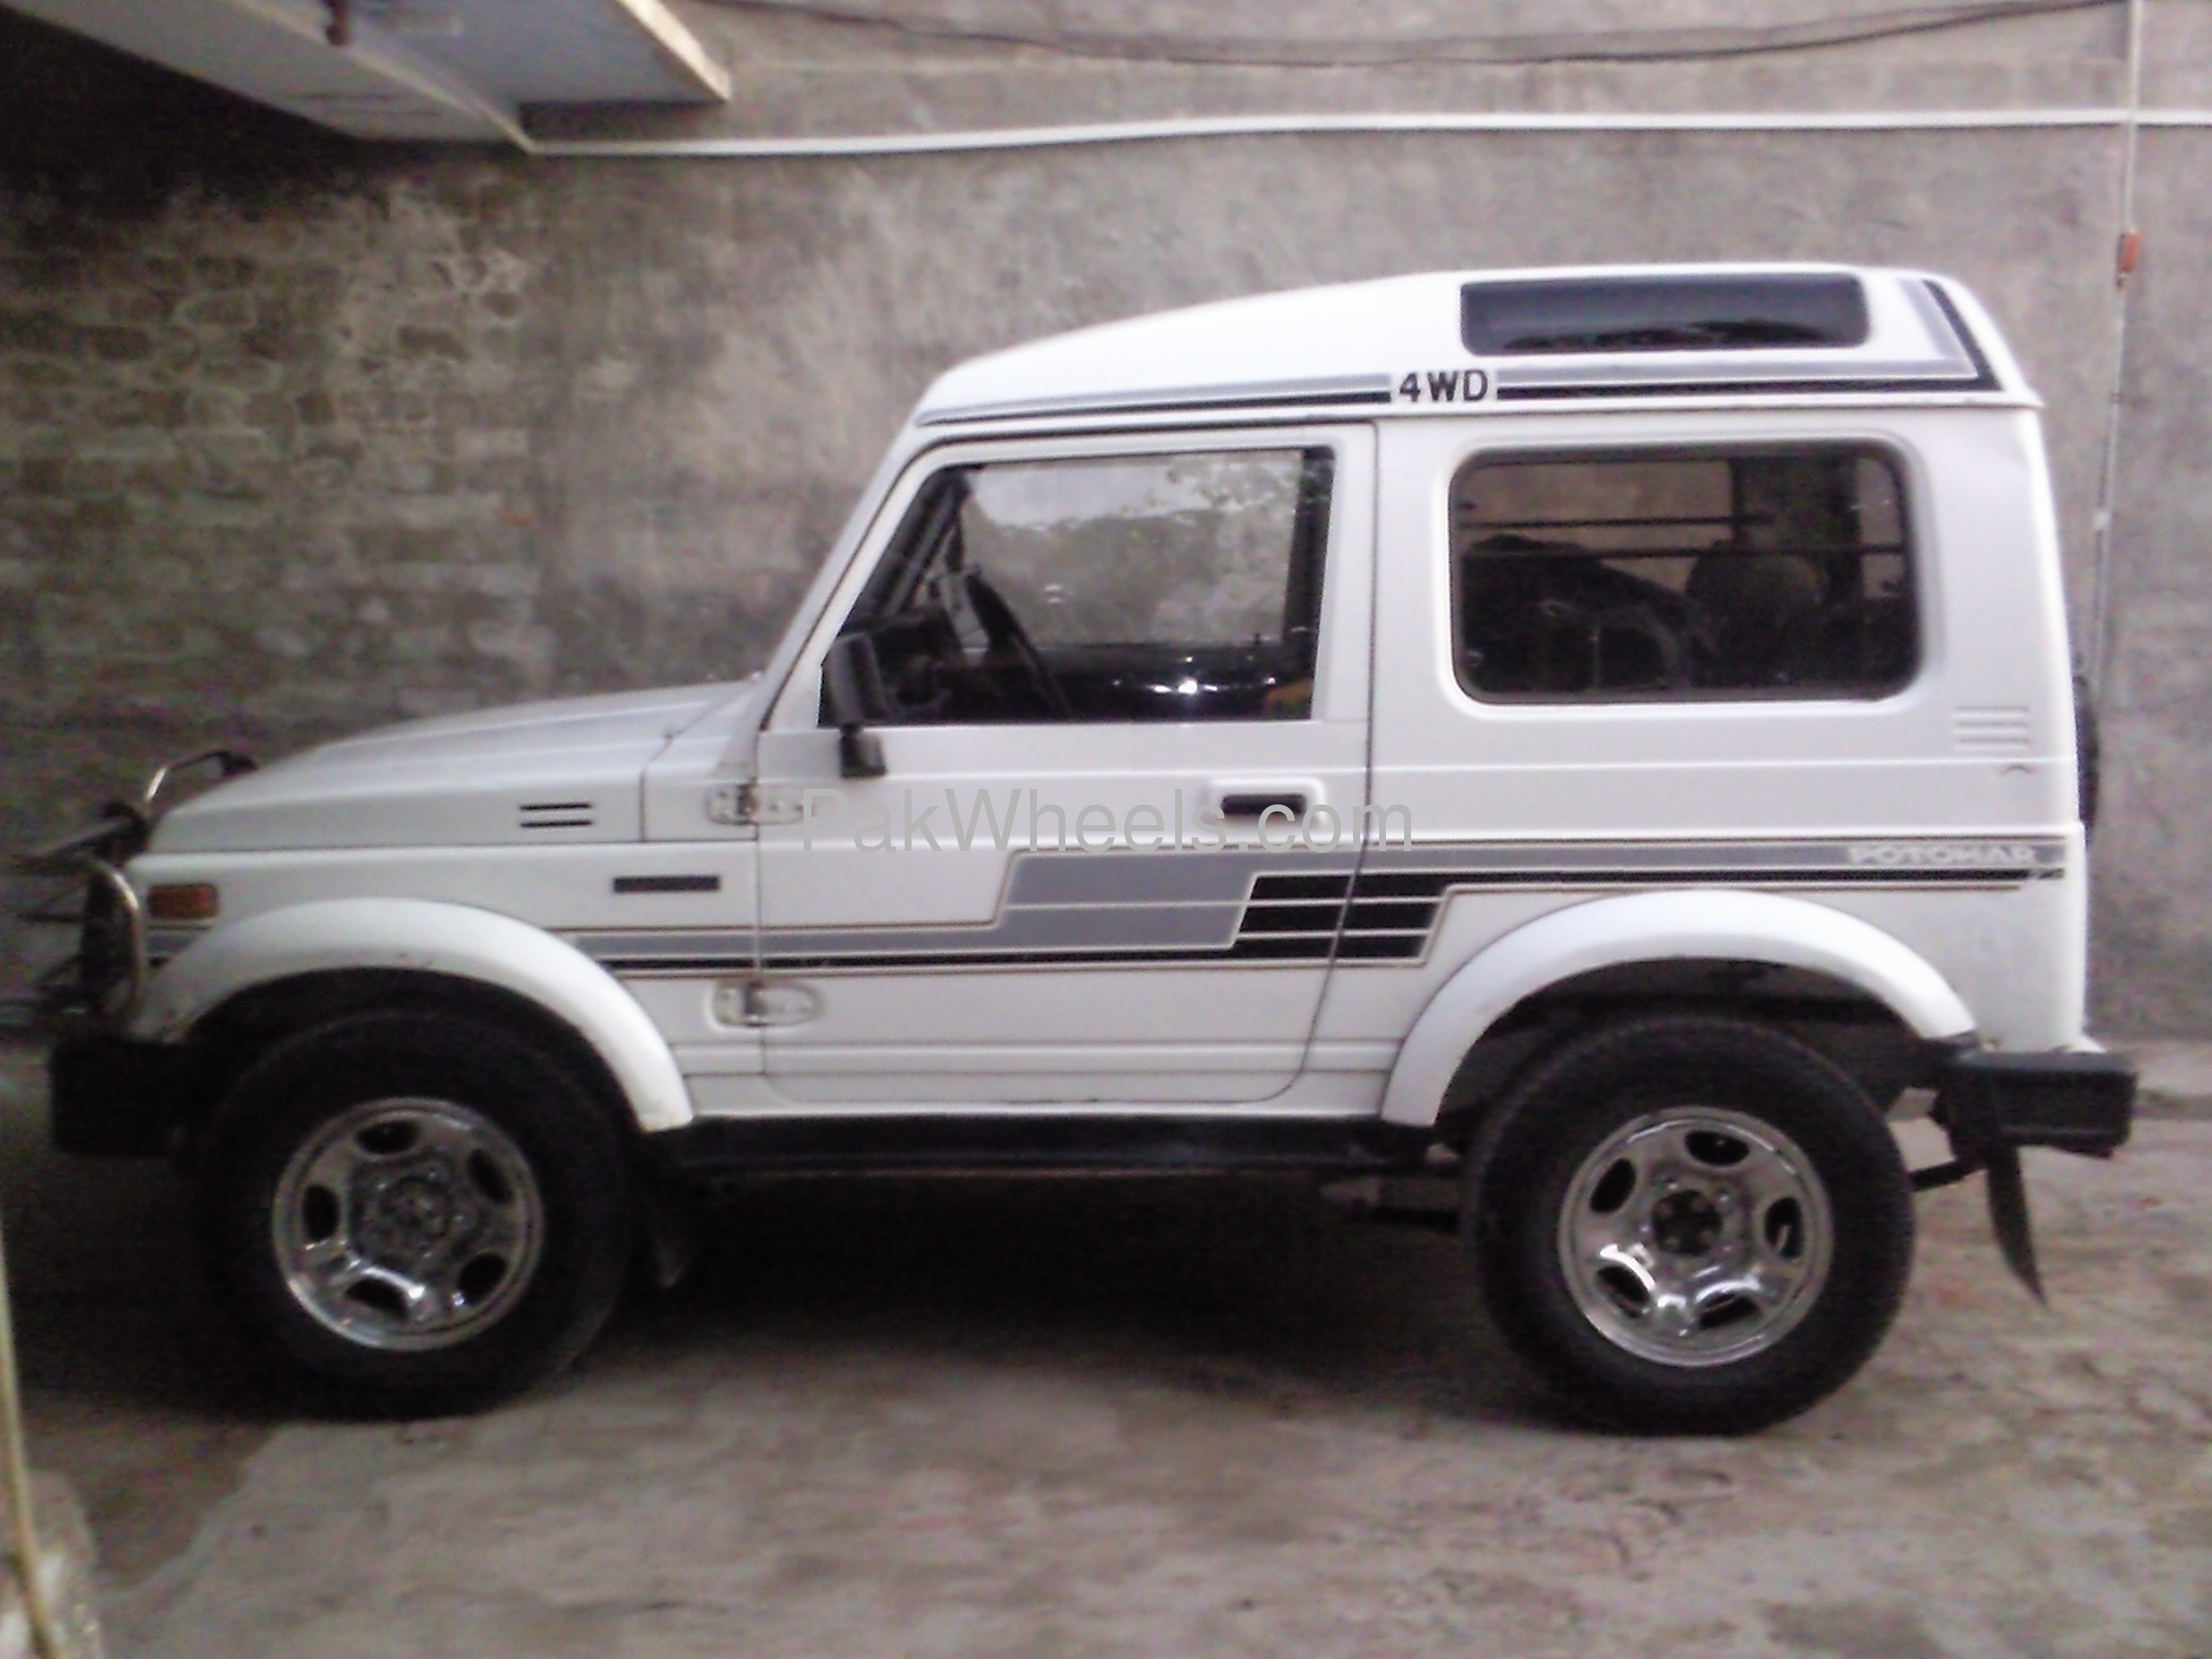 suzuki potohar jeep islamabad cars pictures. Black Bedroom Furniture Sets. Home Design Ideas